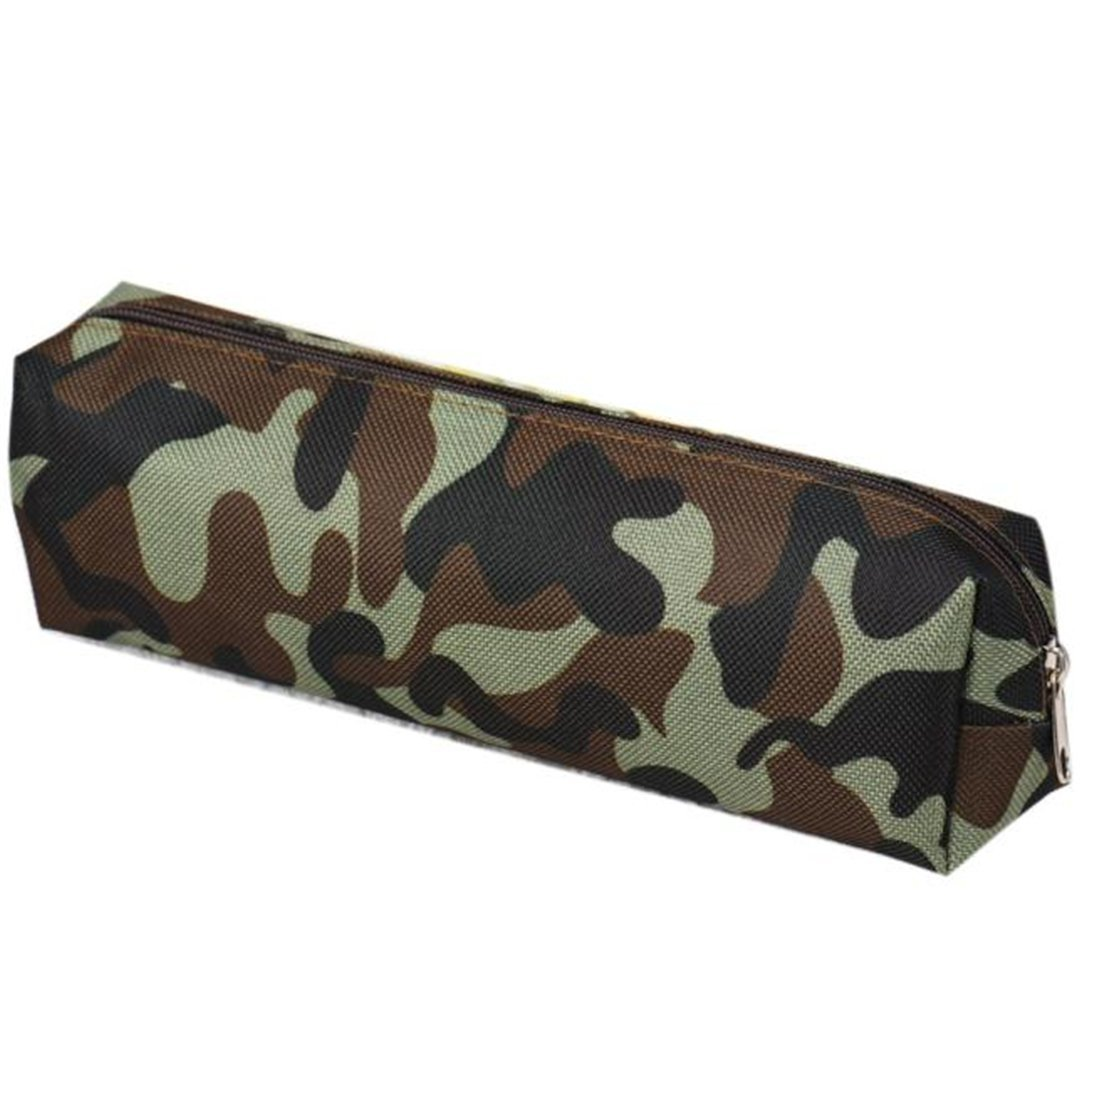 Gemini_mall® 1 x Boys Girls Camouflage Canvas School Pen Pencil Case Pouch Bag, Random Color